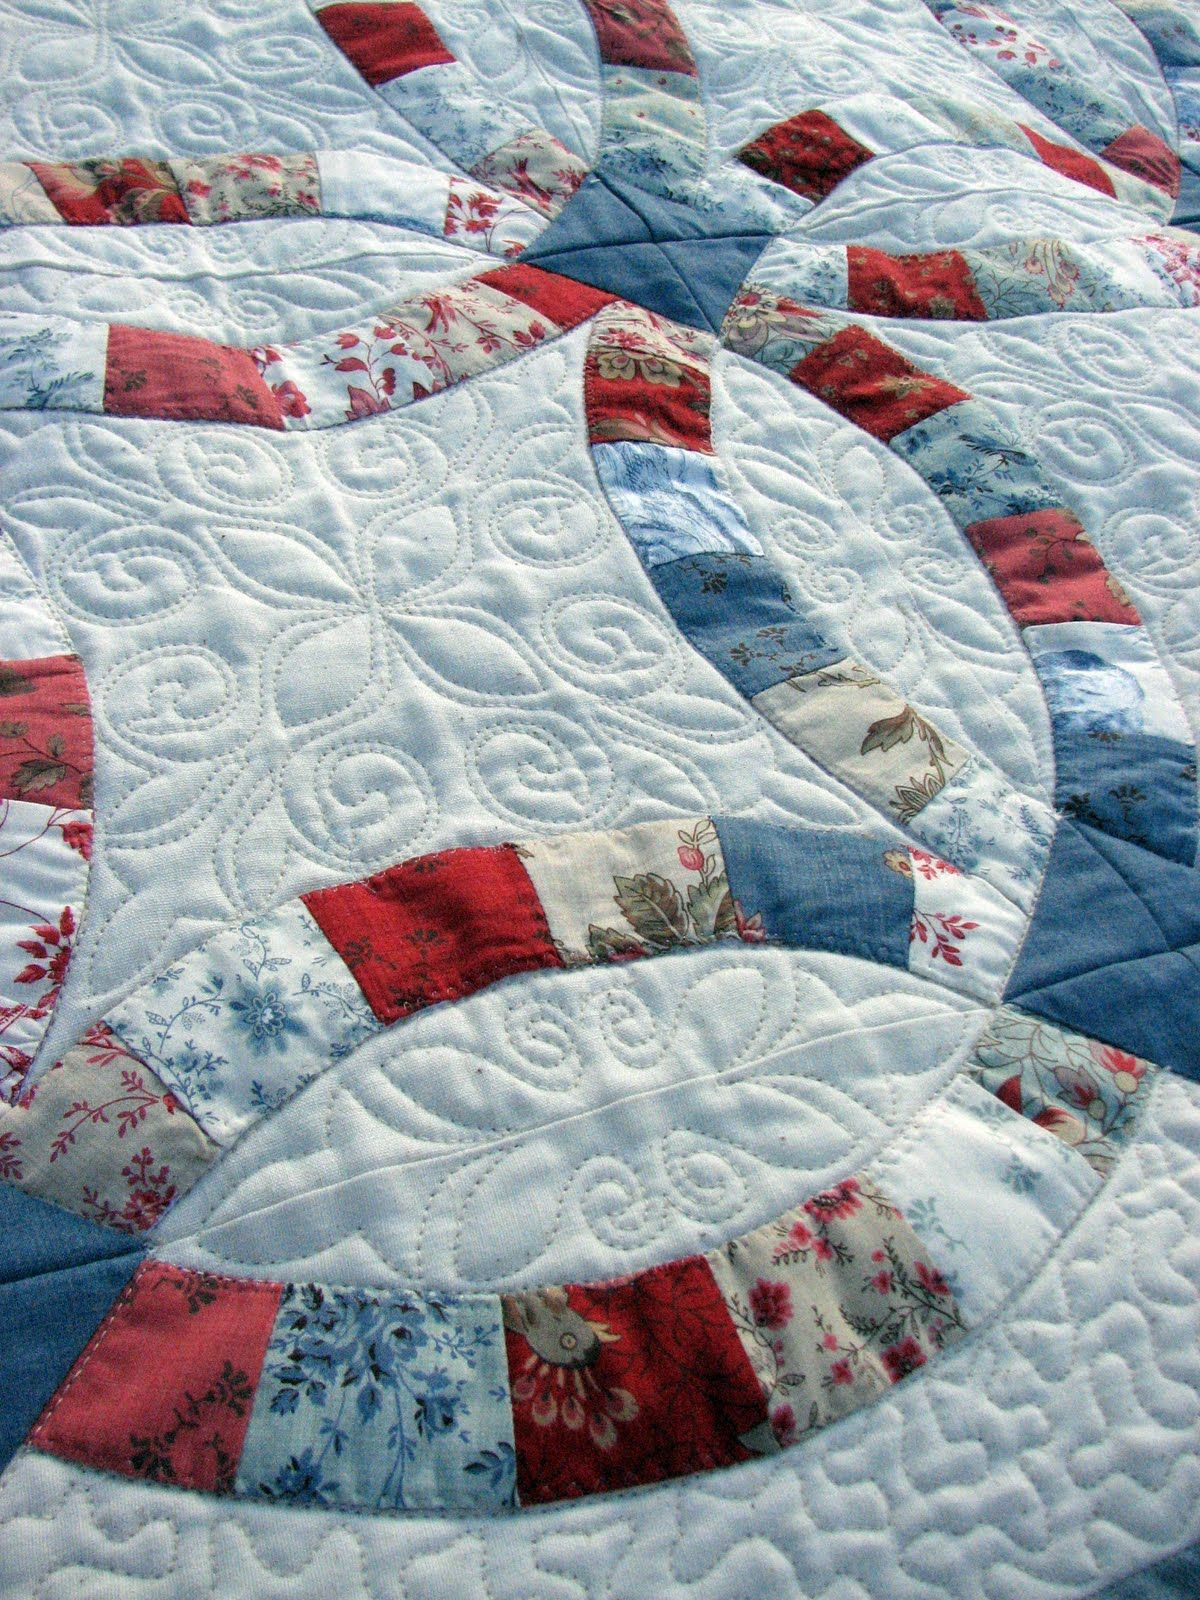 wedding ring quilt pattern Double Wedding Ring quilt in French General Rural Jardin fabrics Close up of quilting at